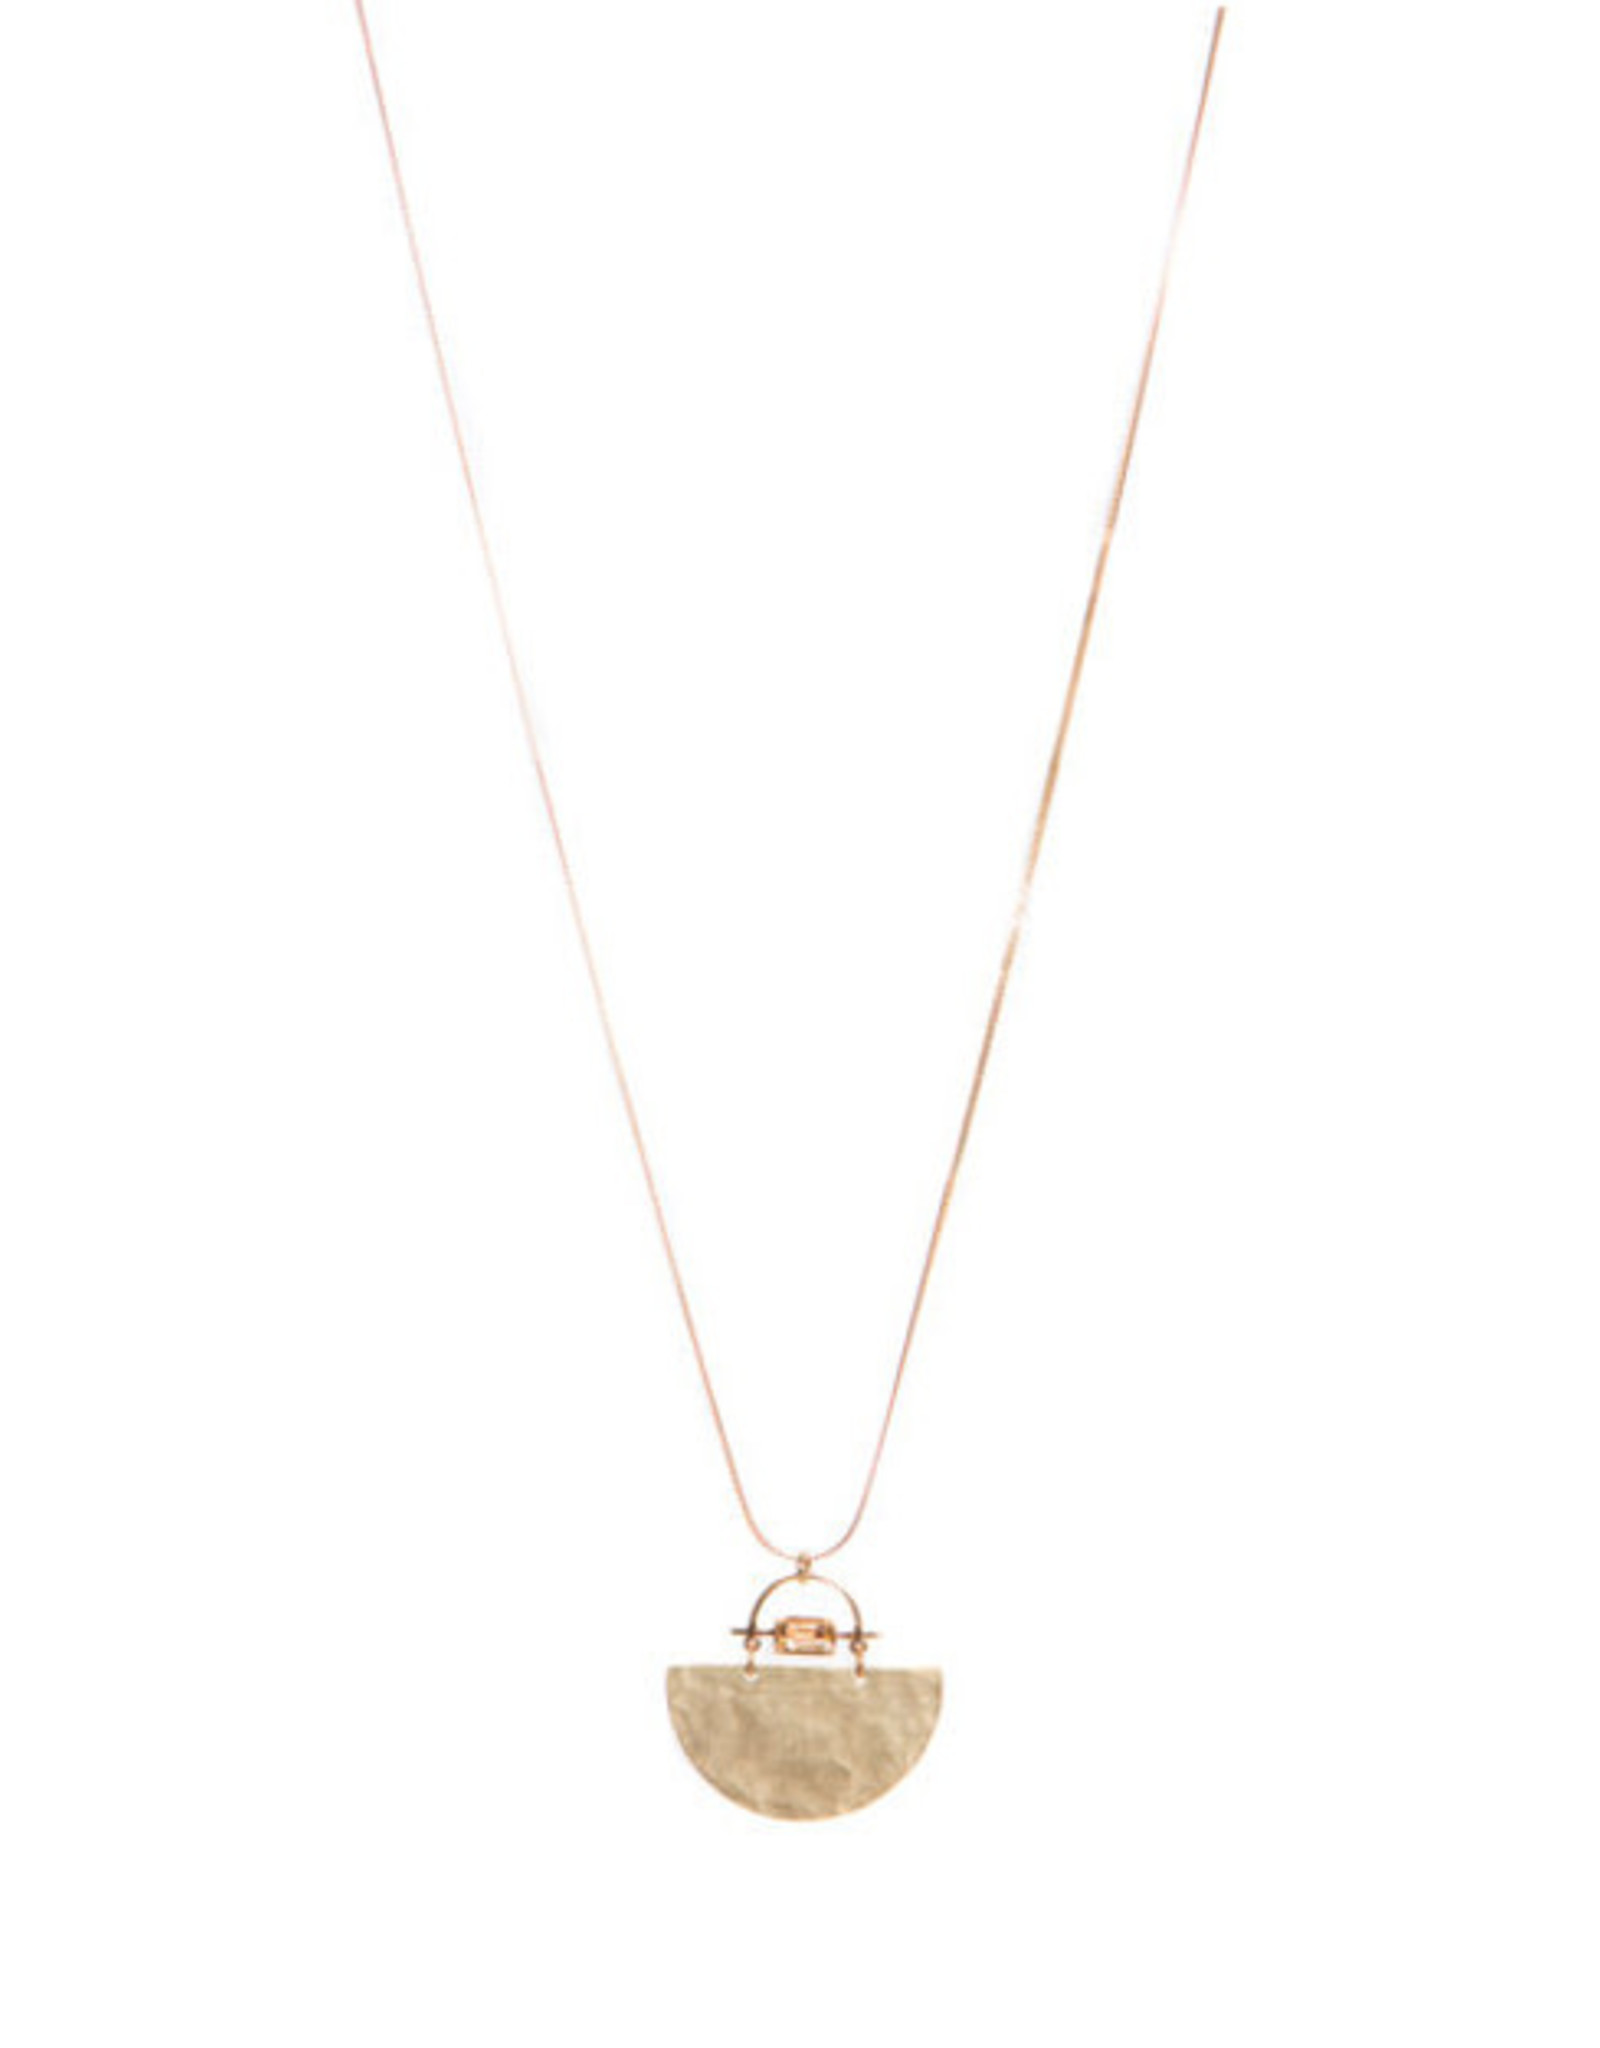 Hailey Gerrits Designs Meridian Necklace - Citrine